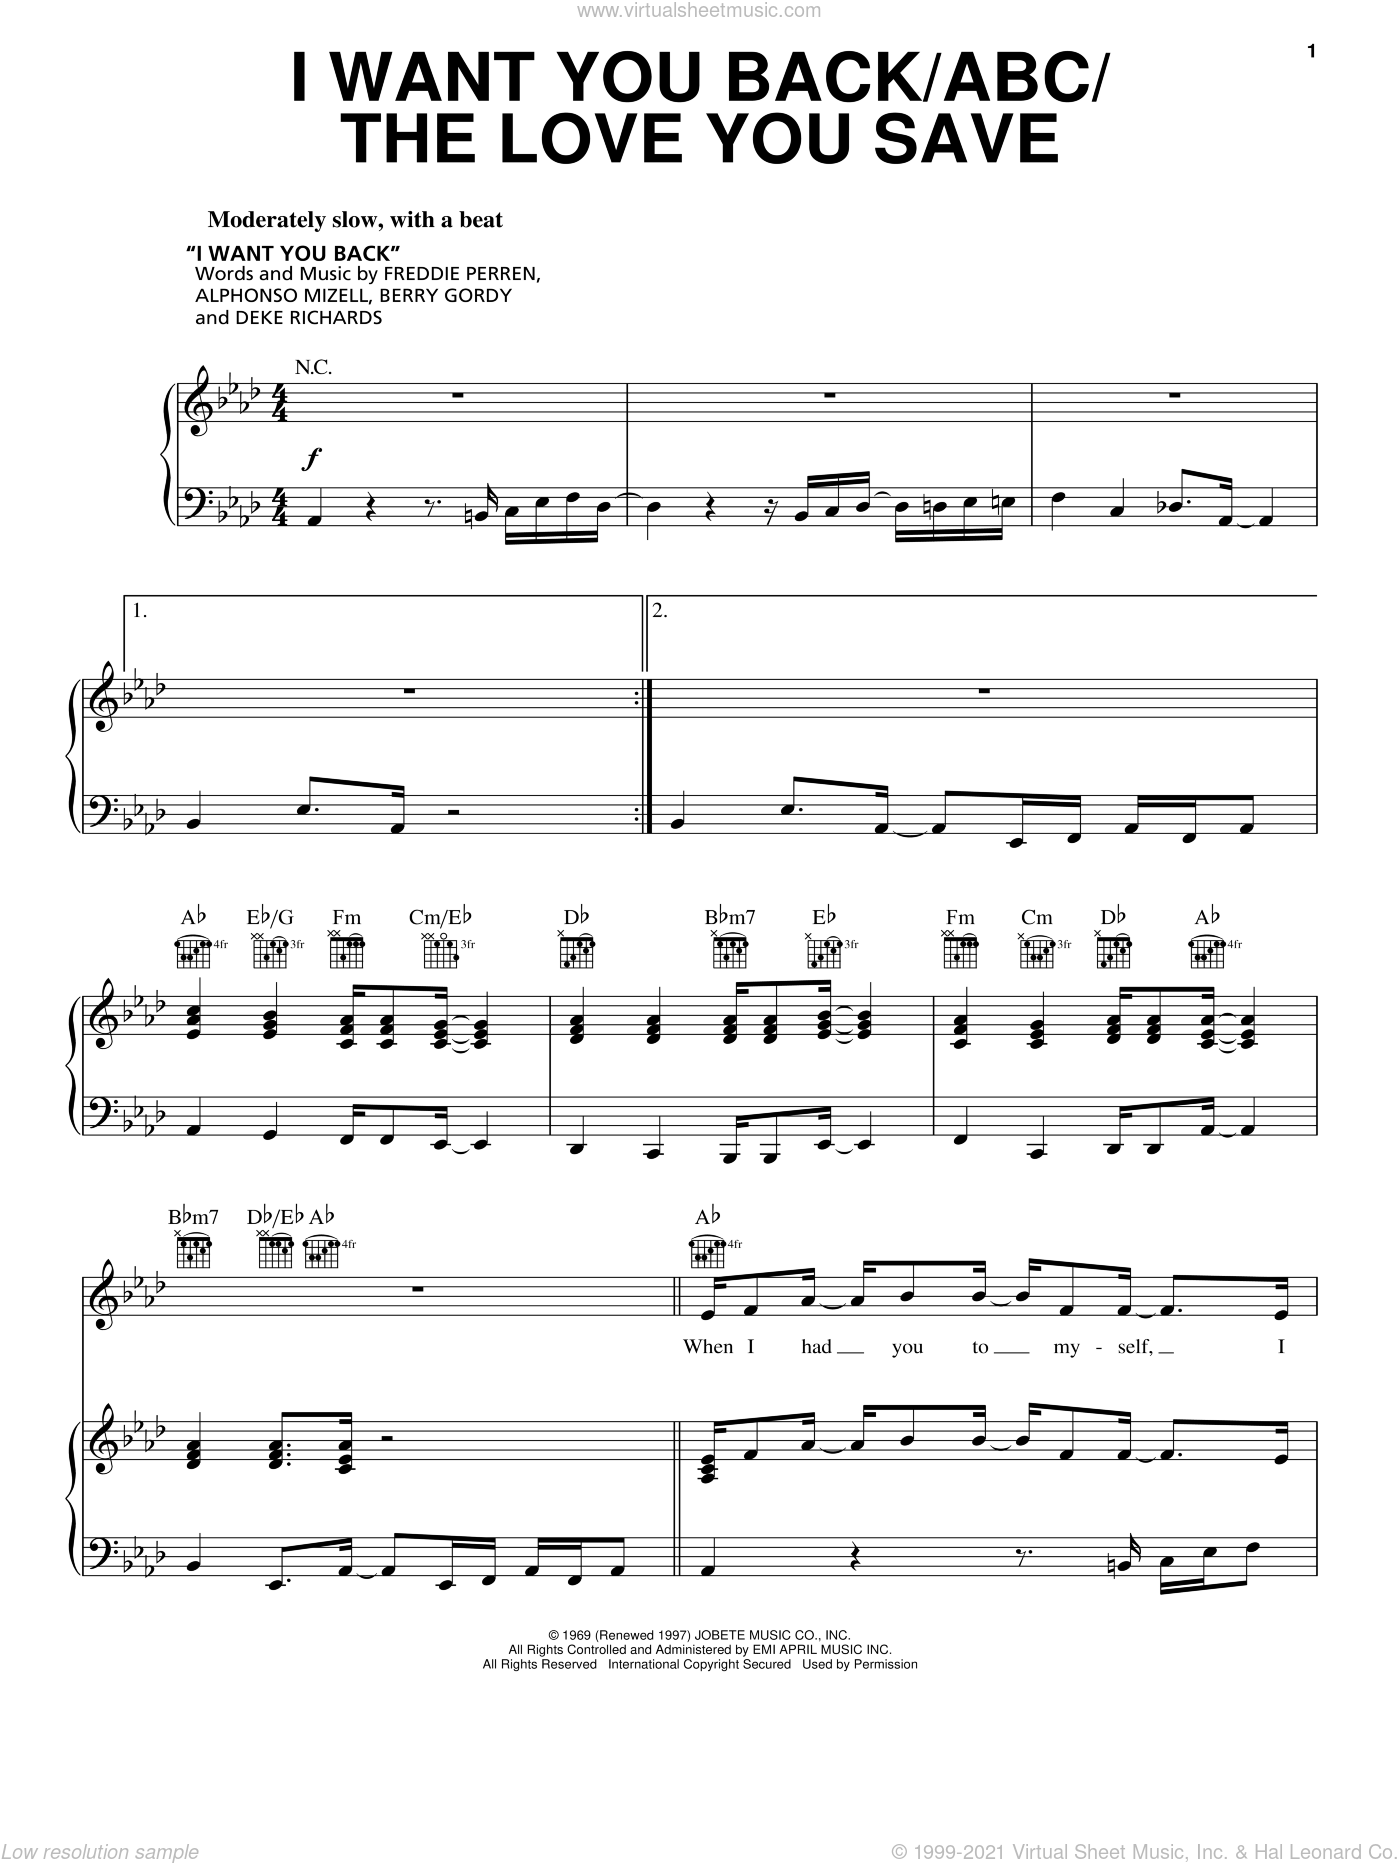 I Want You Back sheet music for voice, piano or guitar by The Jackson 5 and Berry Gordy. Score Image Preview.